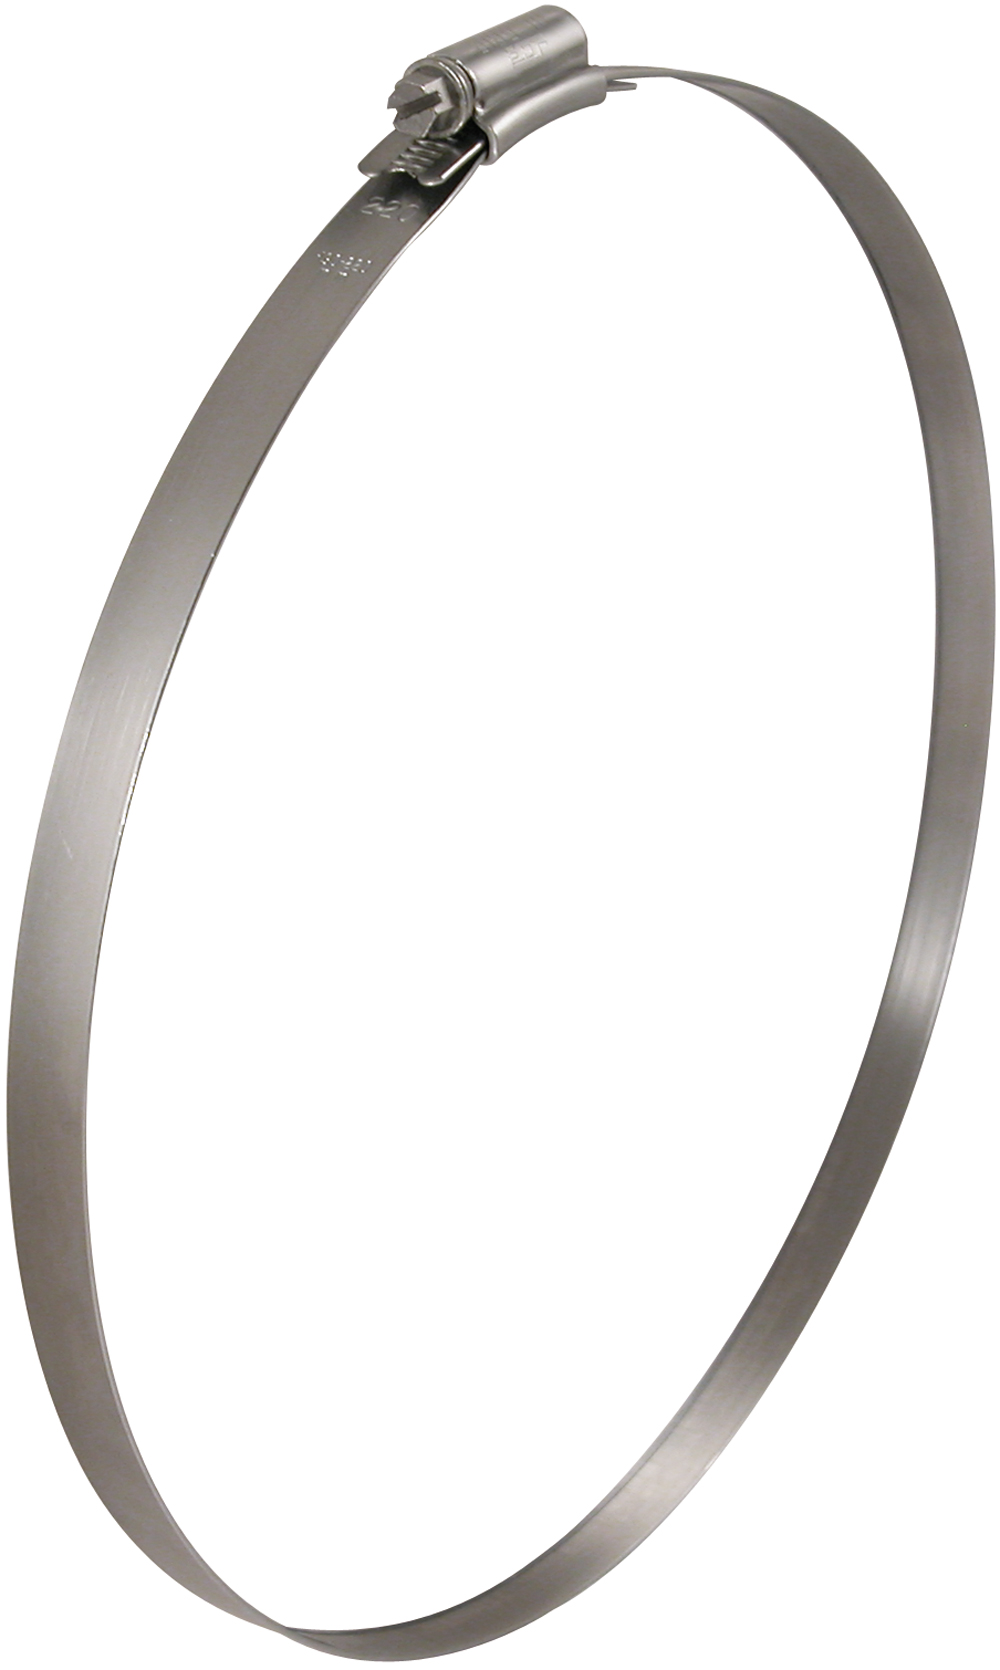 250mm-280mm Diameter Worm Drive Hose Clip Hi-Grip Stainless Steel (Natural)